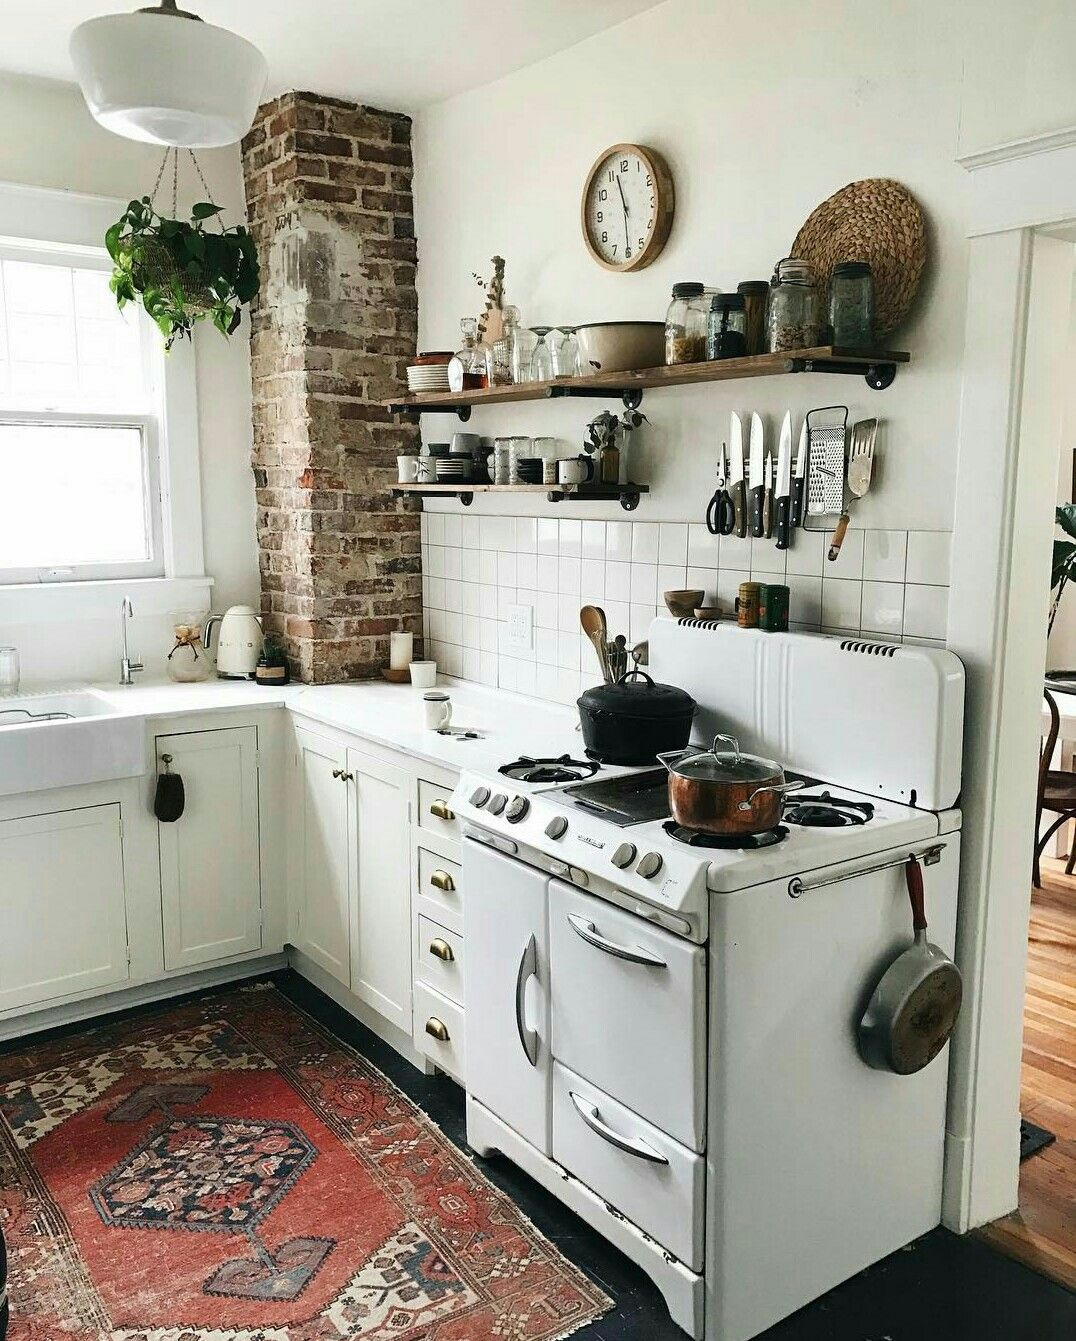 Pin by elle on room decor pinterest kitchens apartments and house